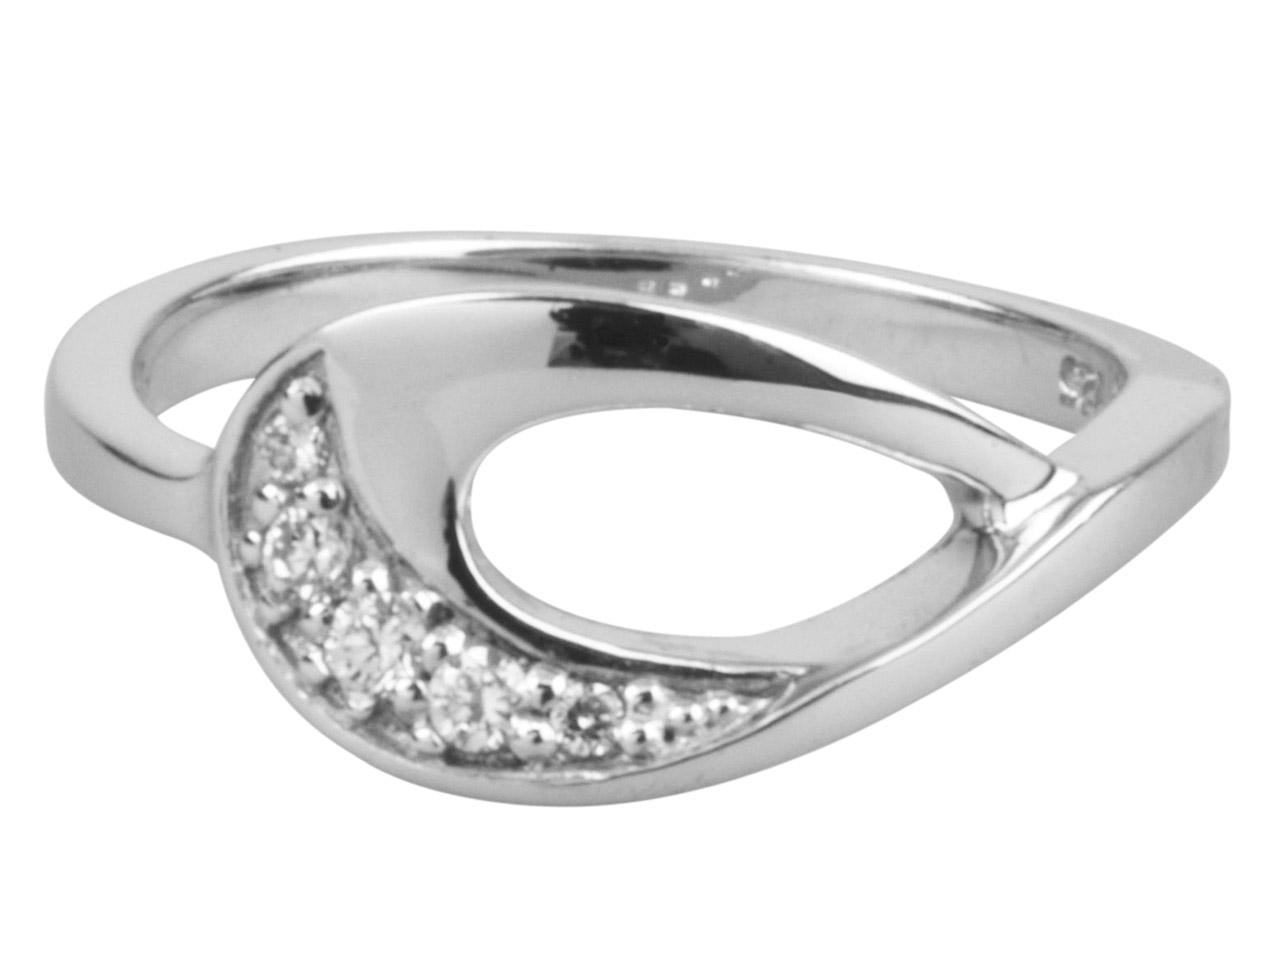 Sterling Silver Cubic Zirconia     Teardrop Ring, Size N 5 Graduated  White Cz's